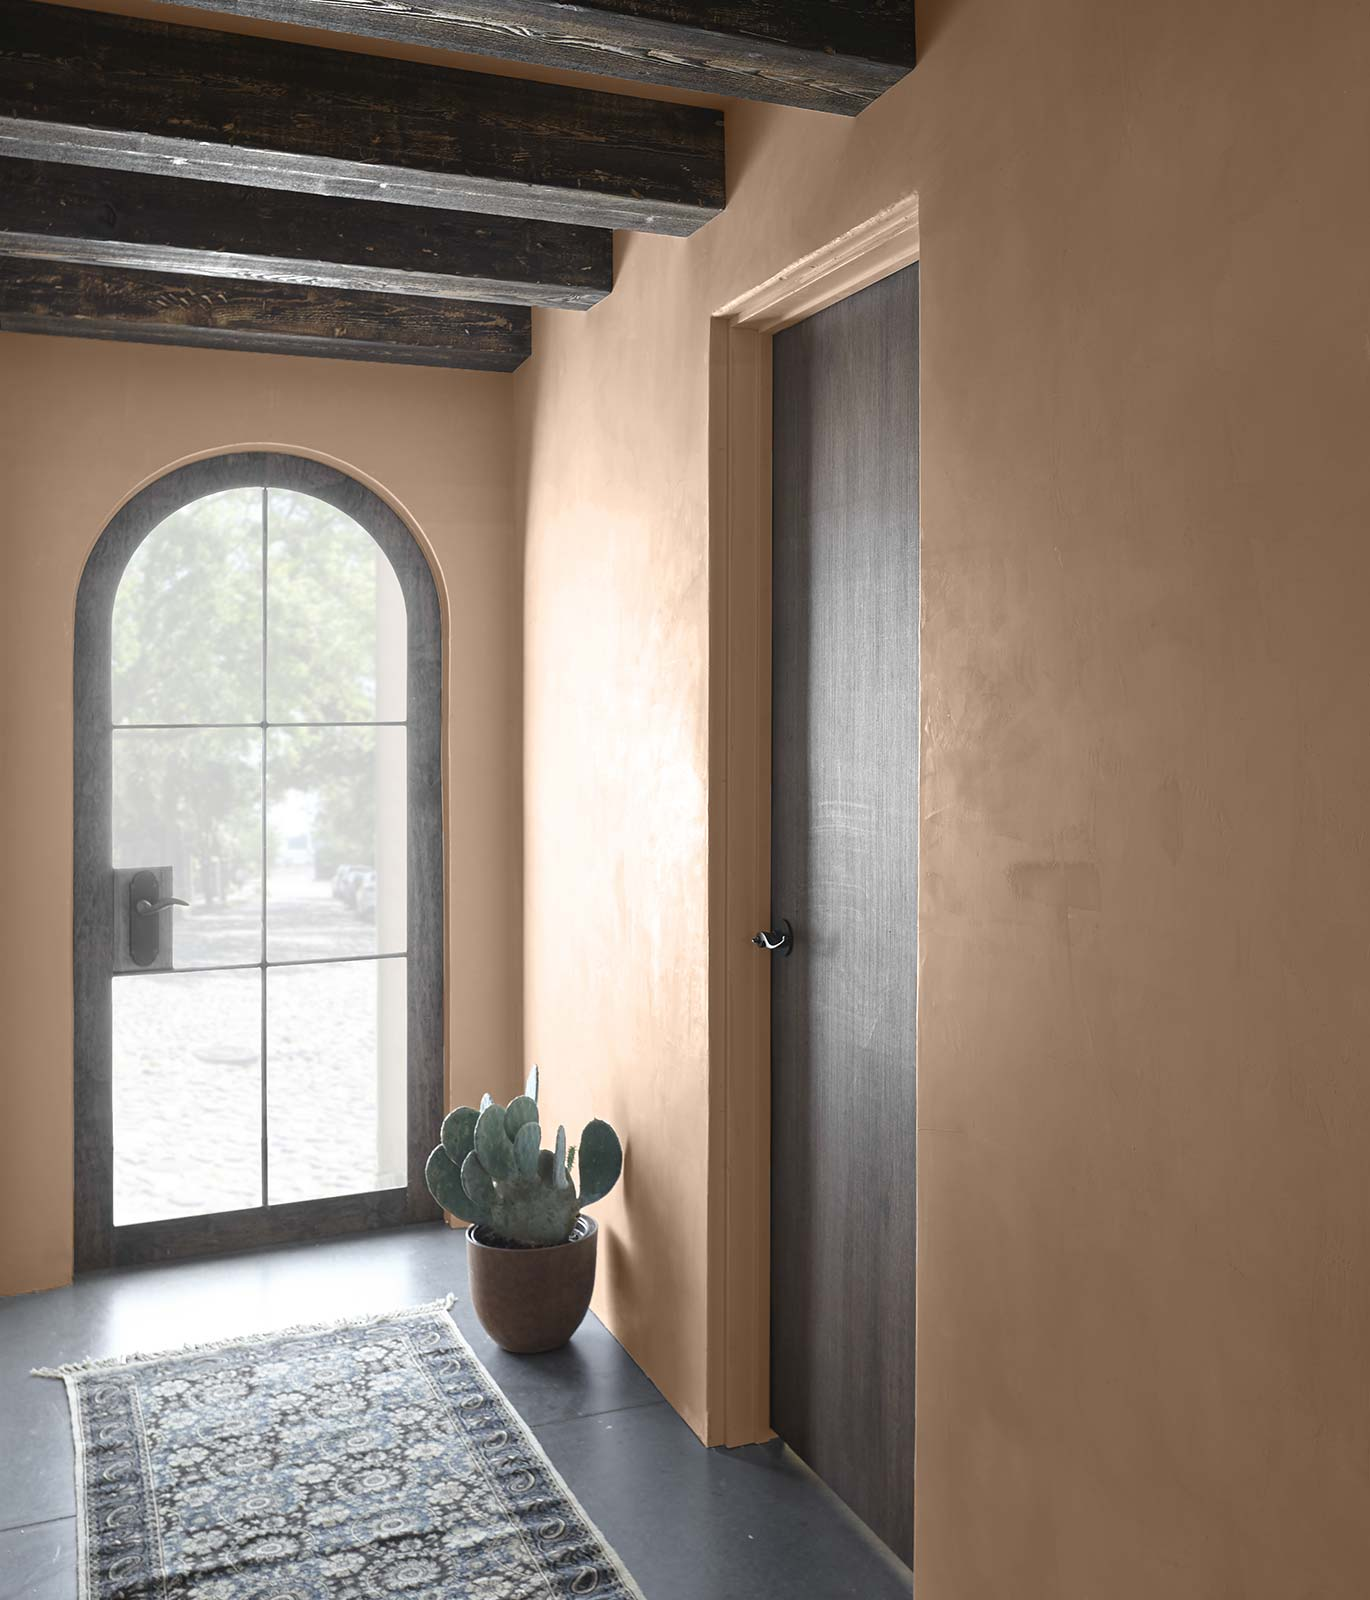 A comforting entry way with warm tan painted walls and dark brown colored wood trim.